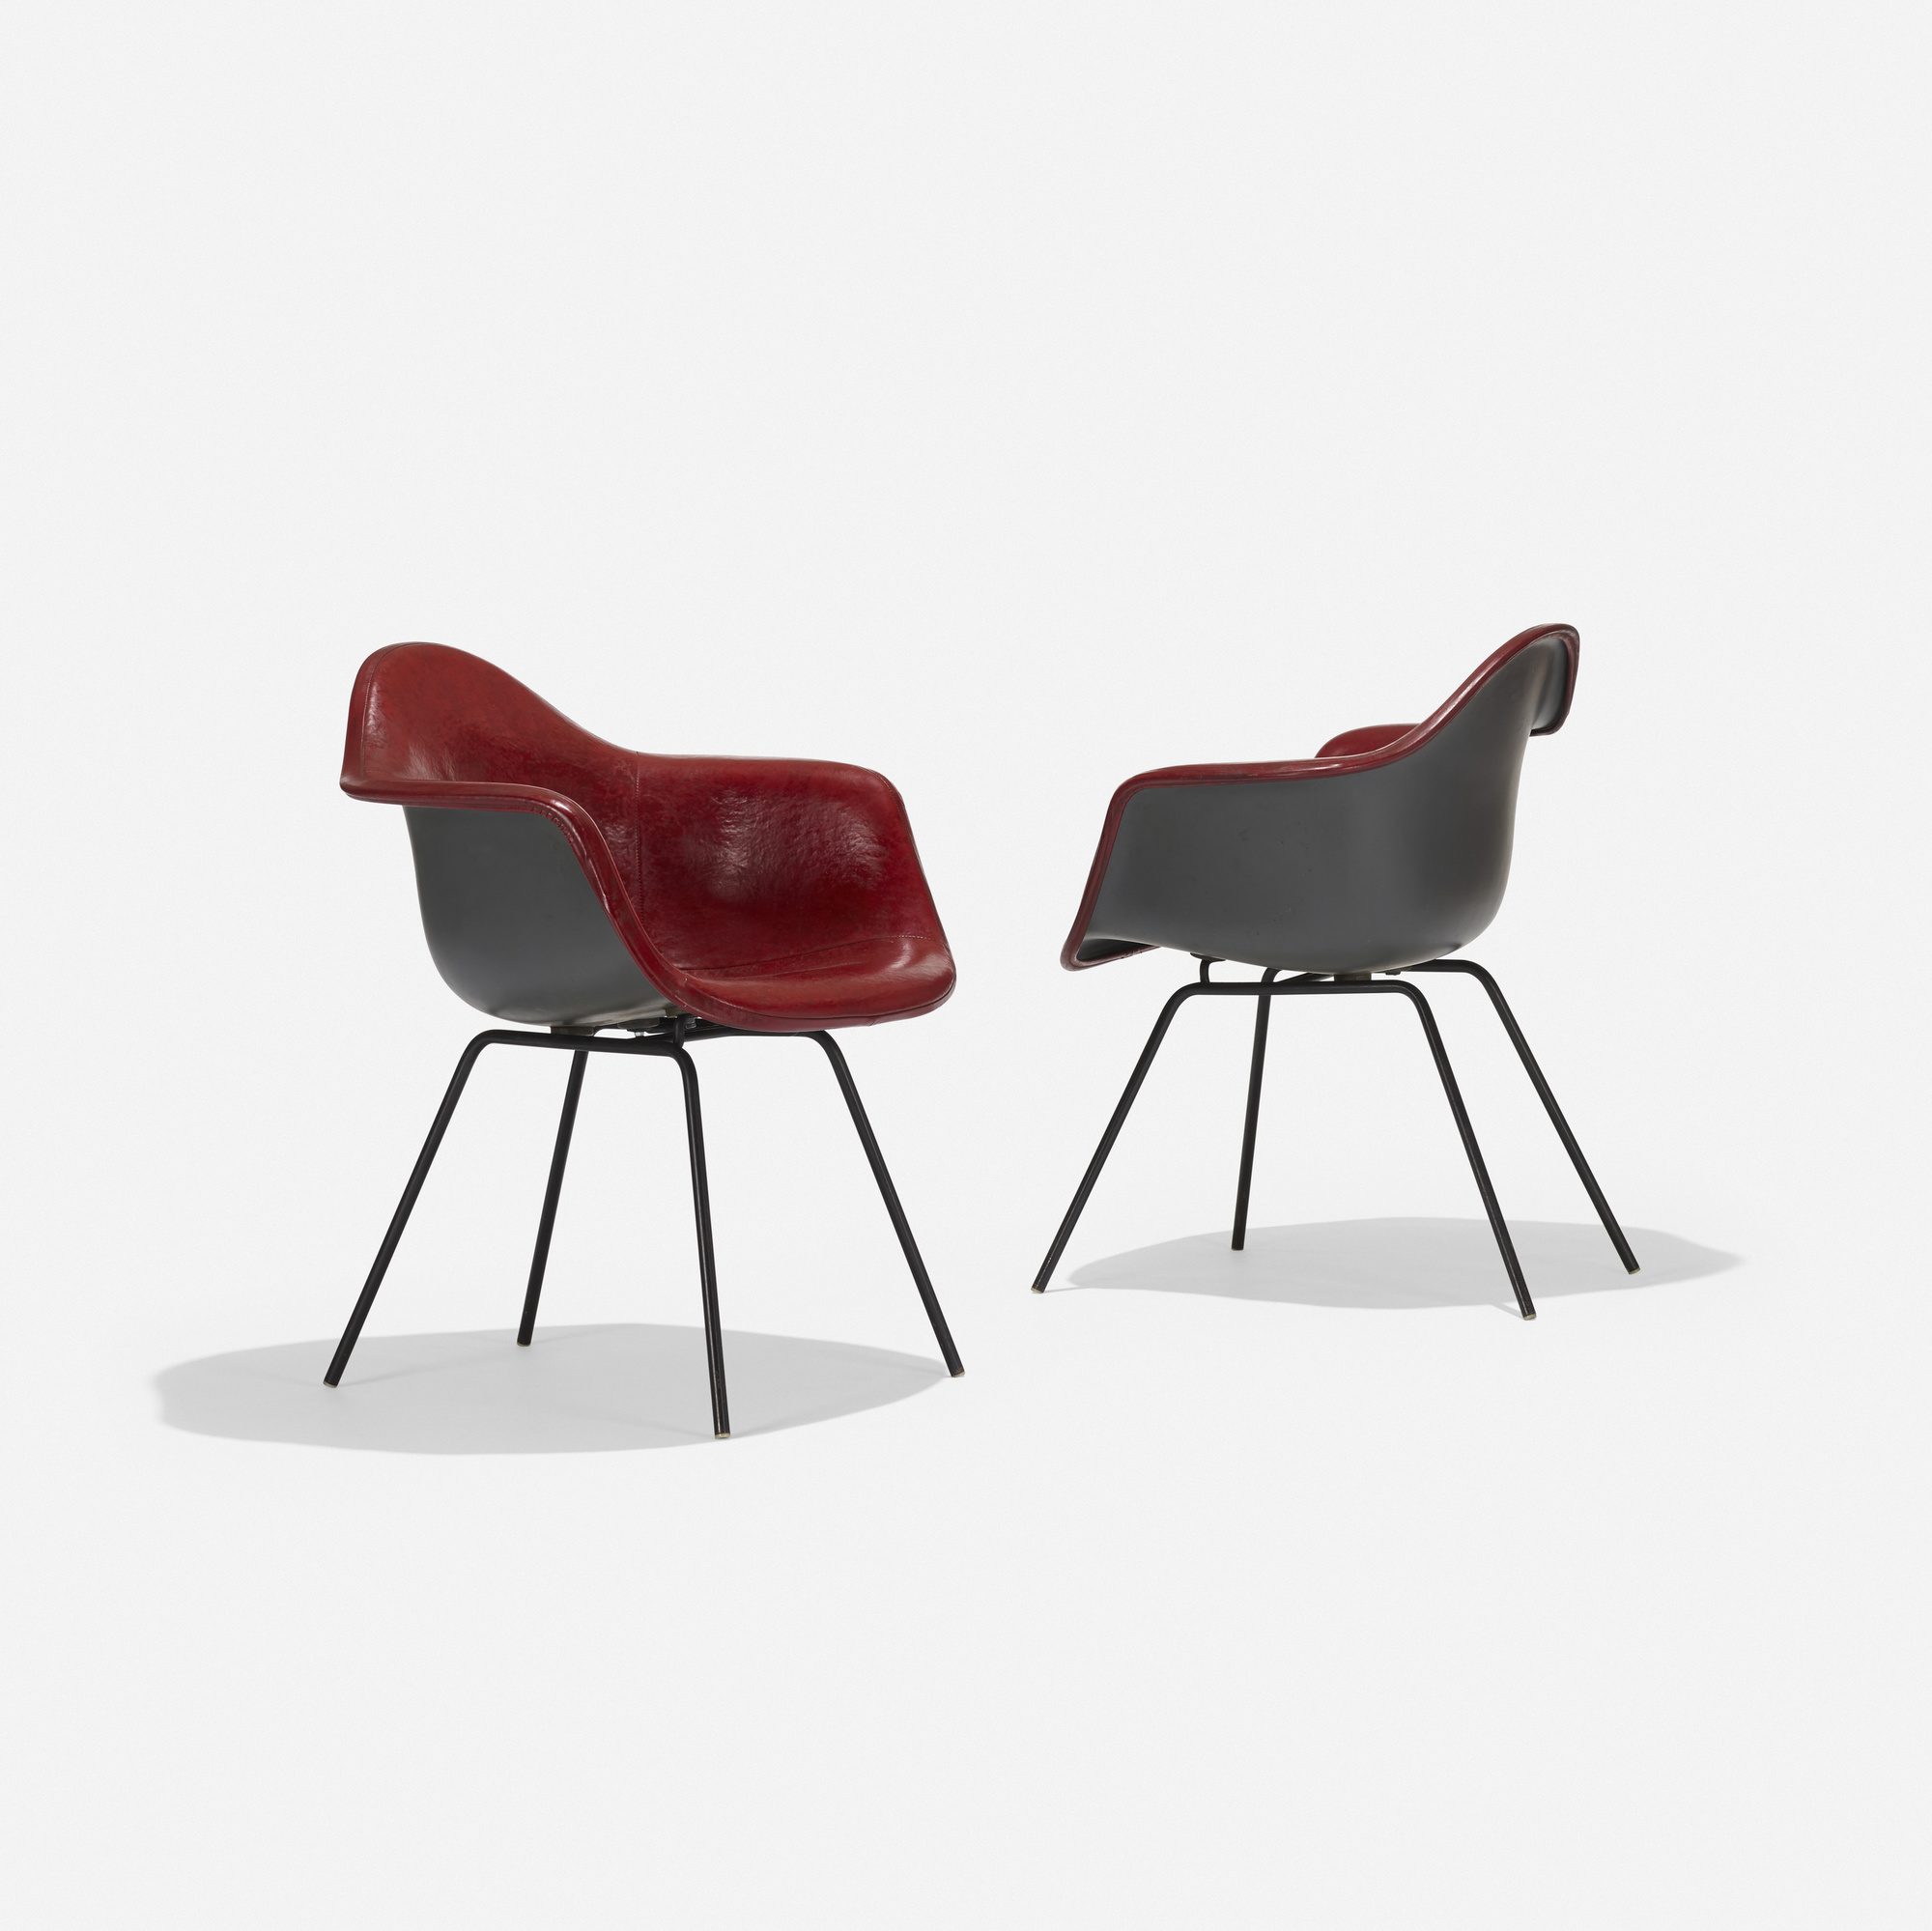 127: Charles and Ray Eames / DAX-1, pair (1 of 3)